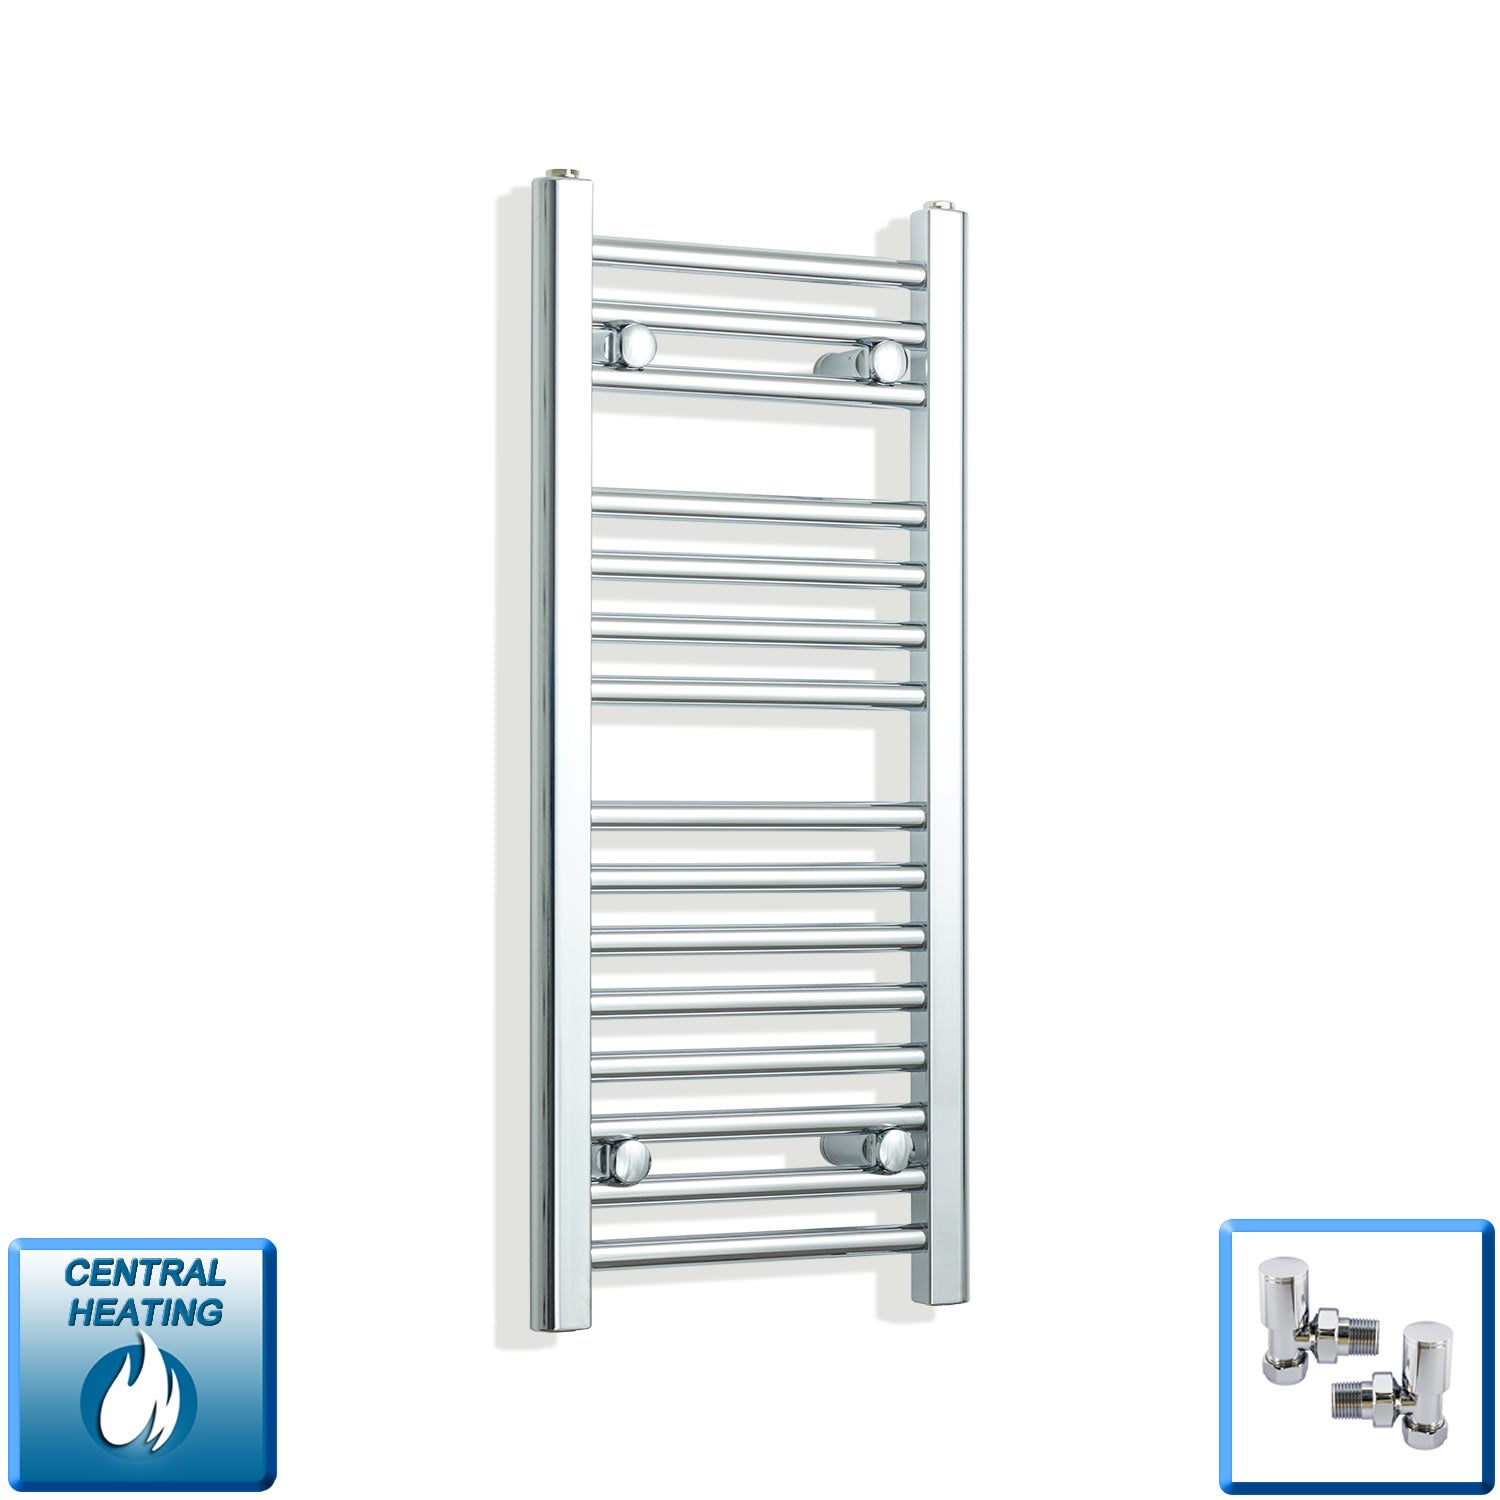 400mm Wide 800mm High Chrome Towel Rail Radiator With Angled Valve